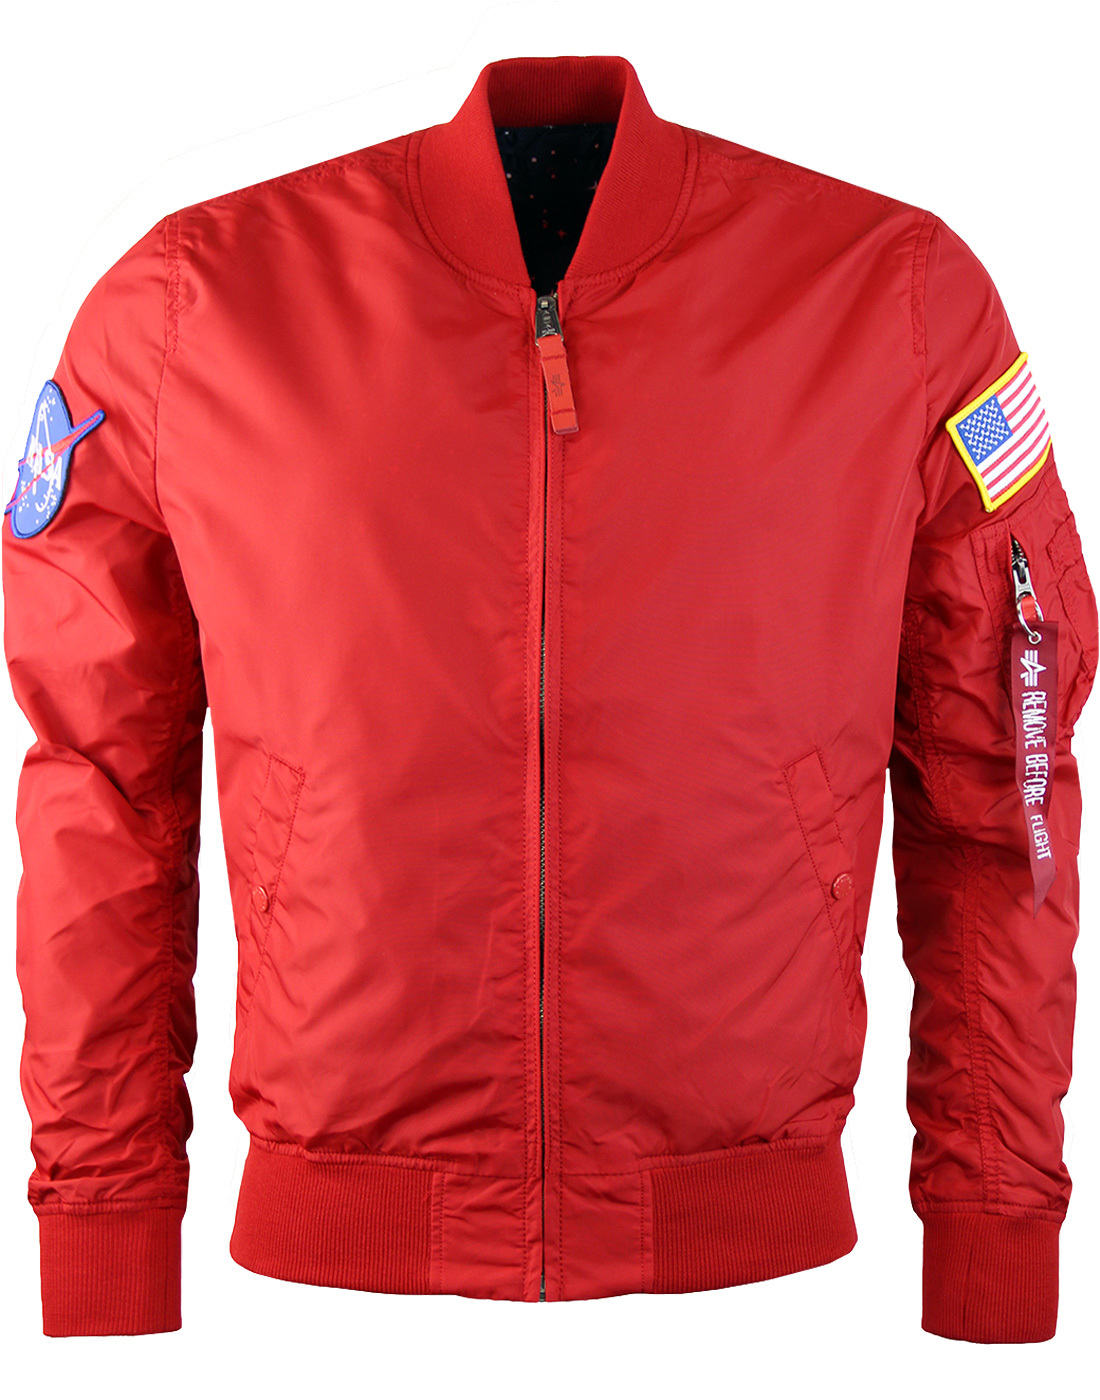 MA-1 TT ALPHA INDUSTRIES NASA Reversible Mod 60s Jacket in Red b47025211f